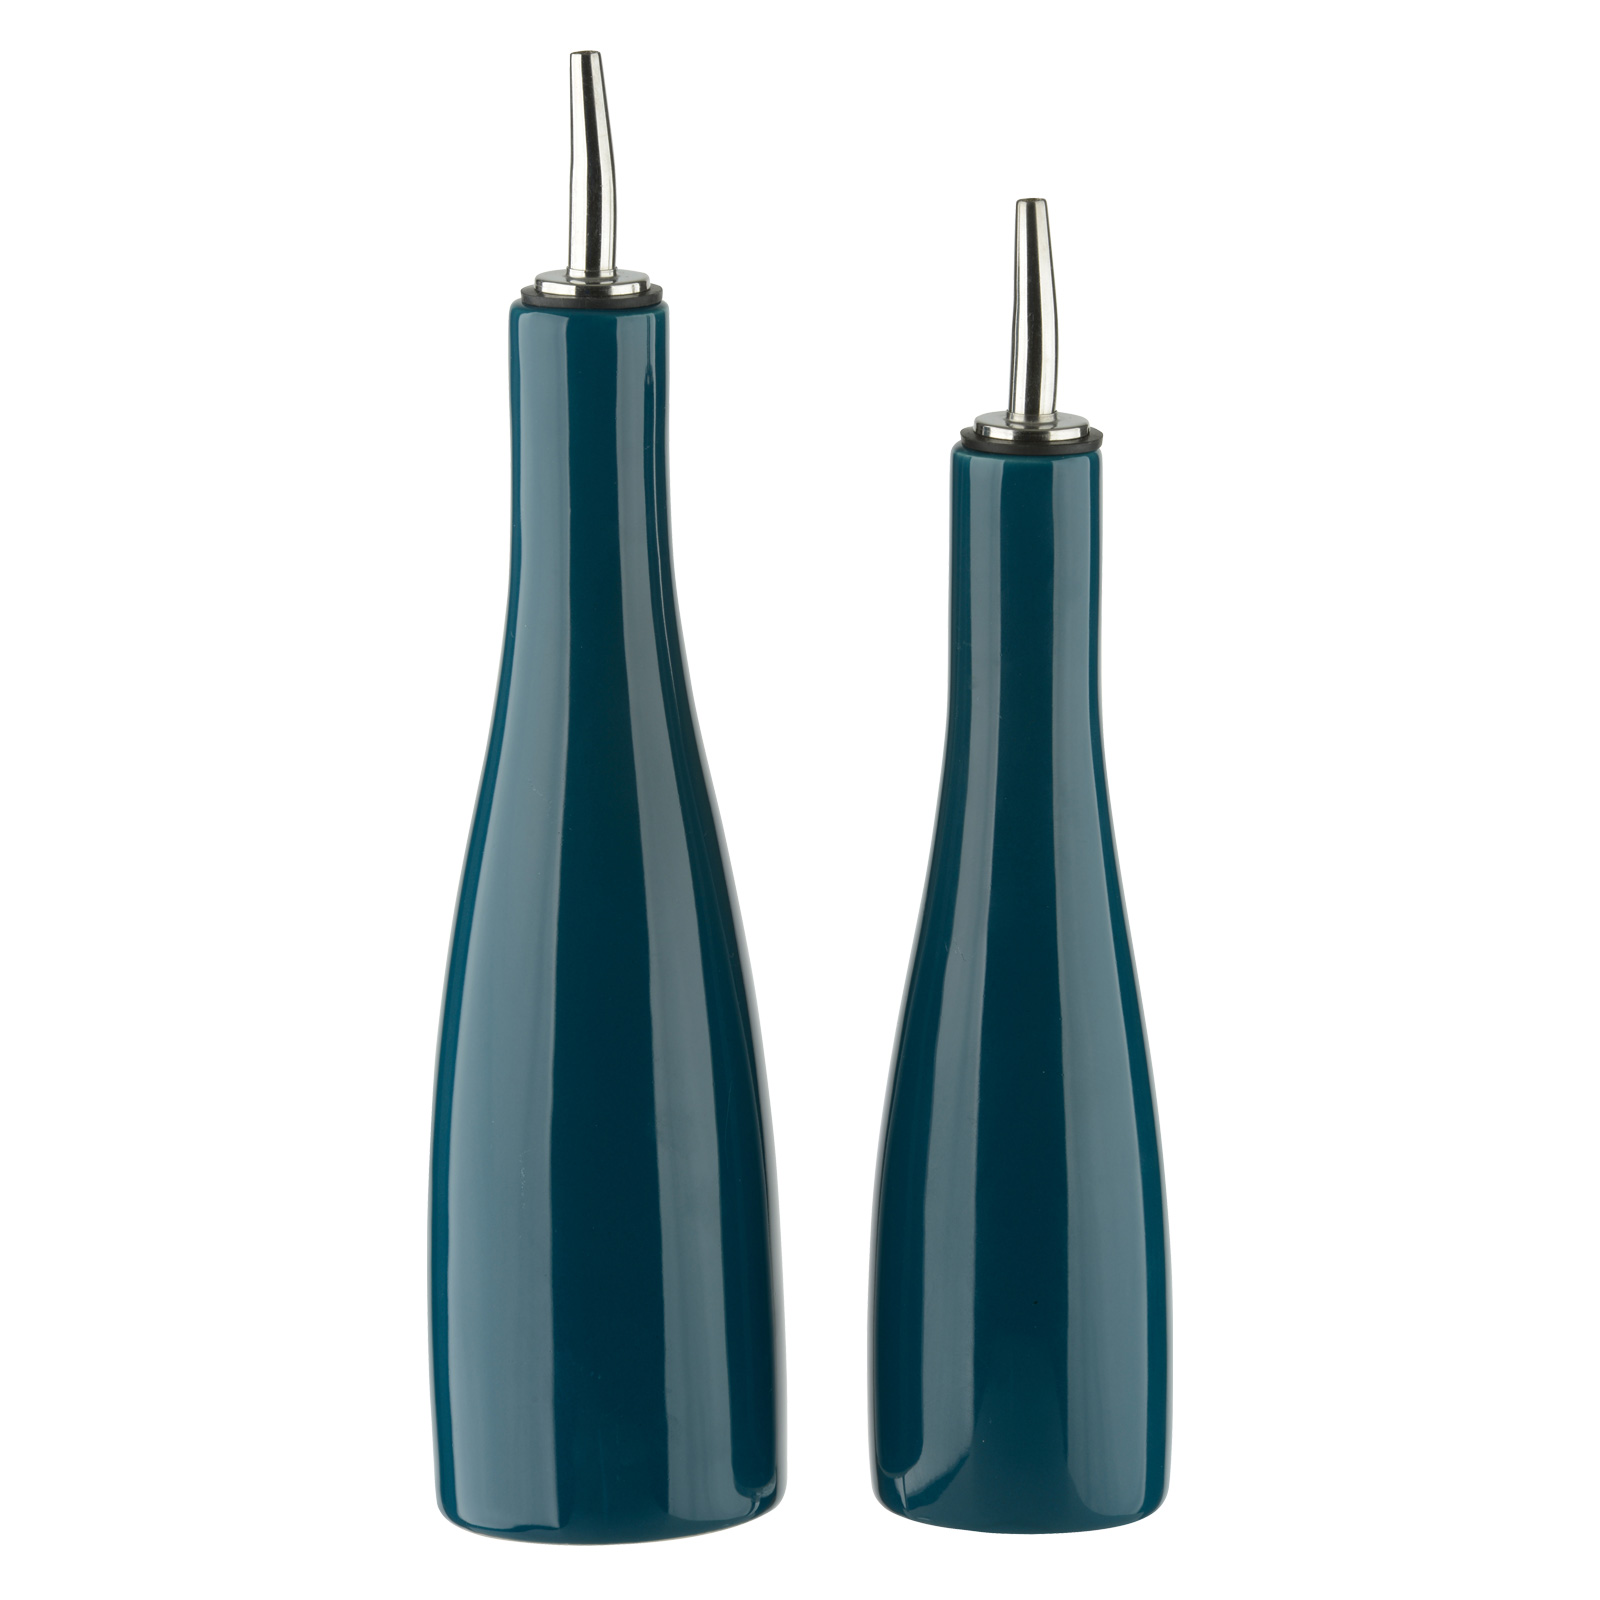 SCOOP! Oil & Vinegar Set Teal by BIA